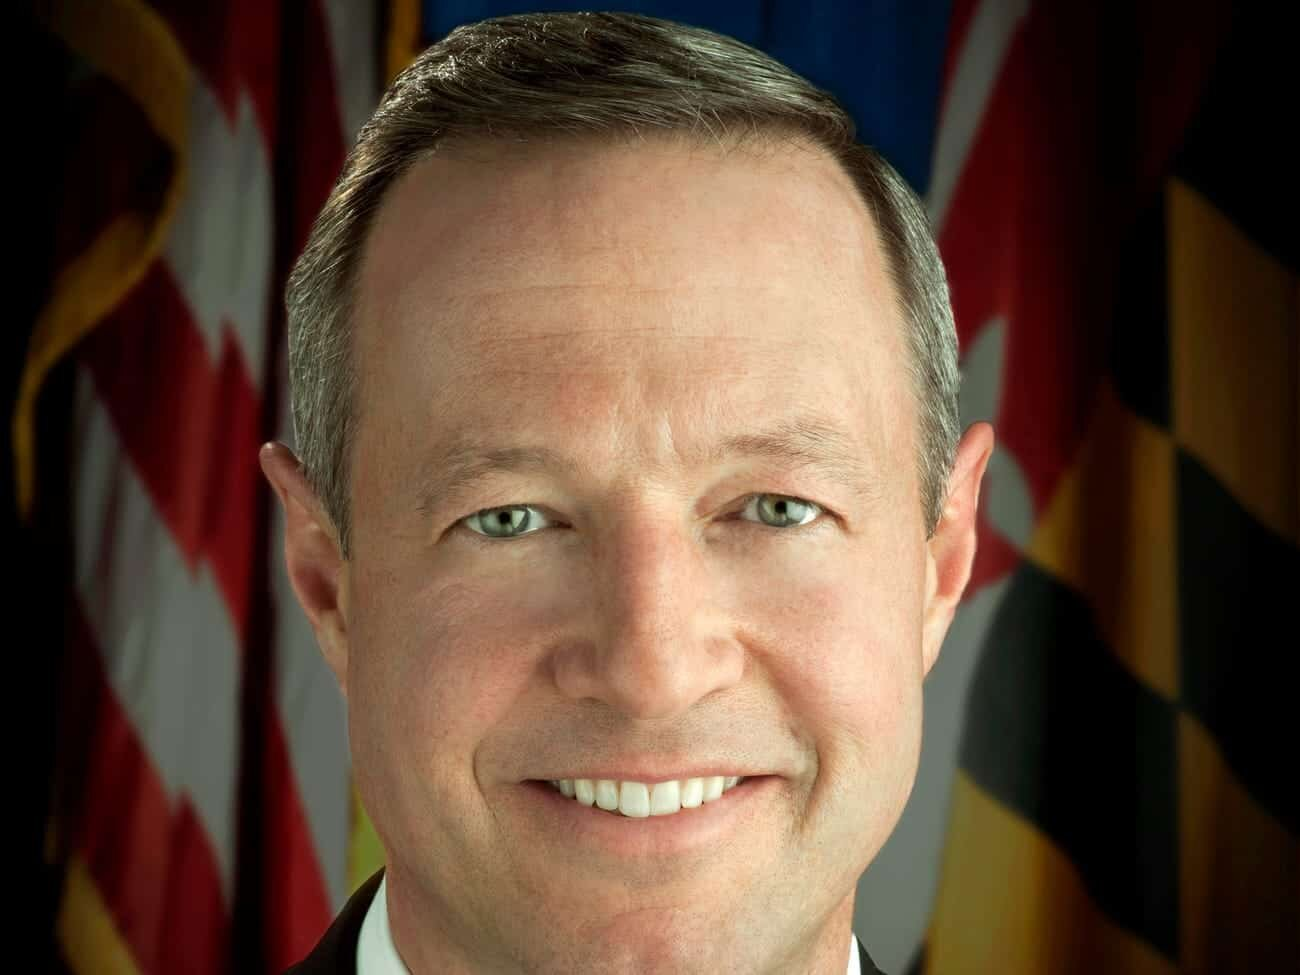 Governor Martin O'Malley